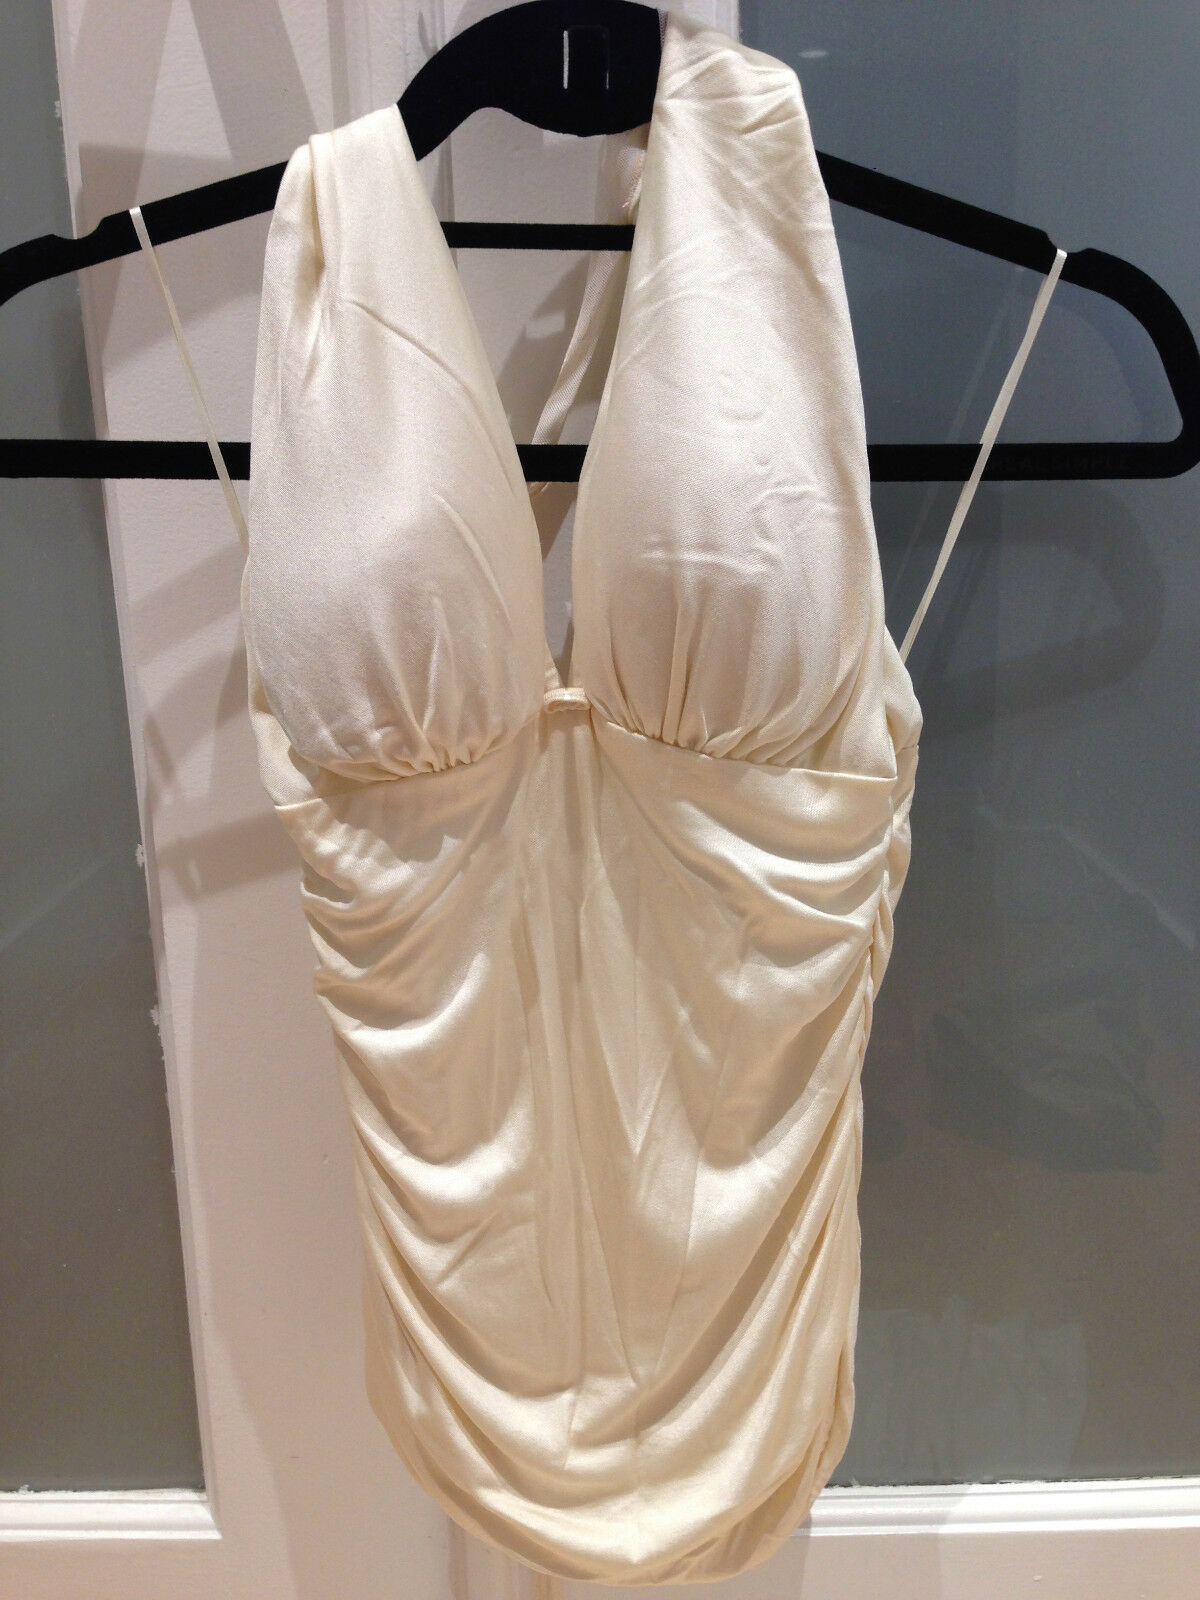 PREOWNED 2 PIECE SET, RENE RUIZ, TOP & SKIRT BEIGE SIZE 4, BARELY USED   AK